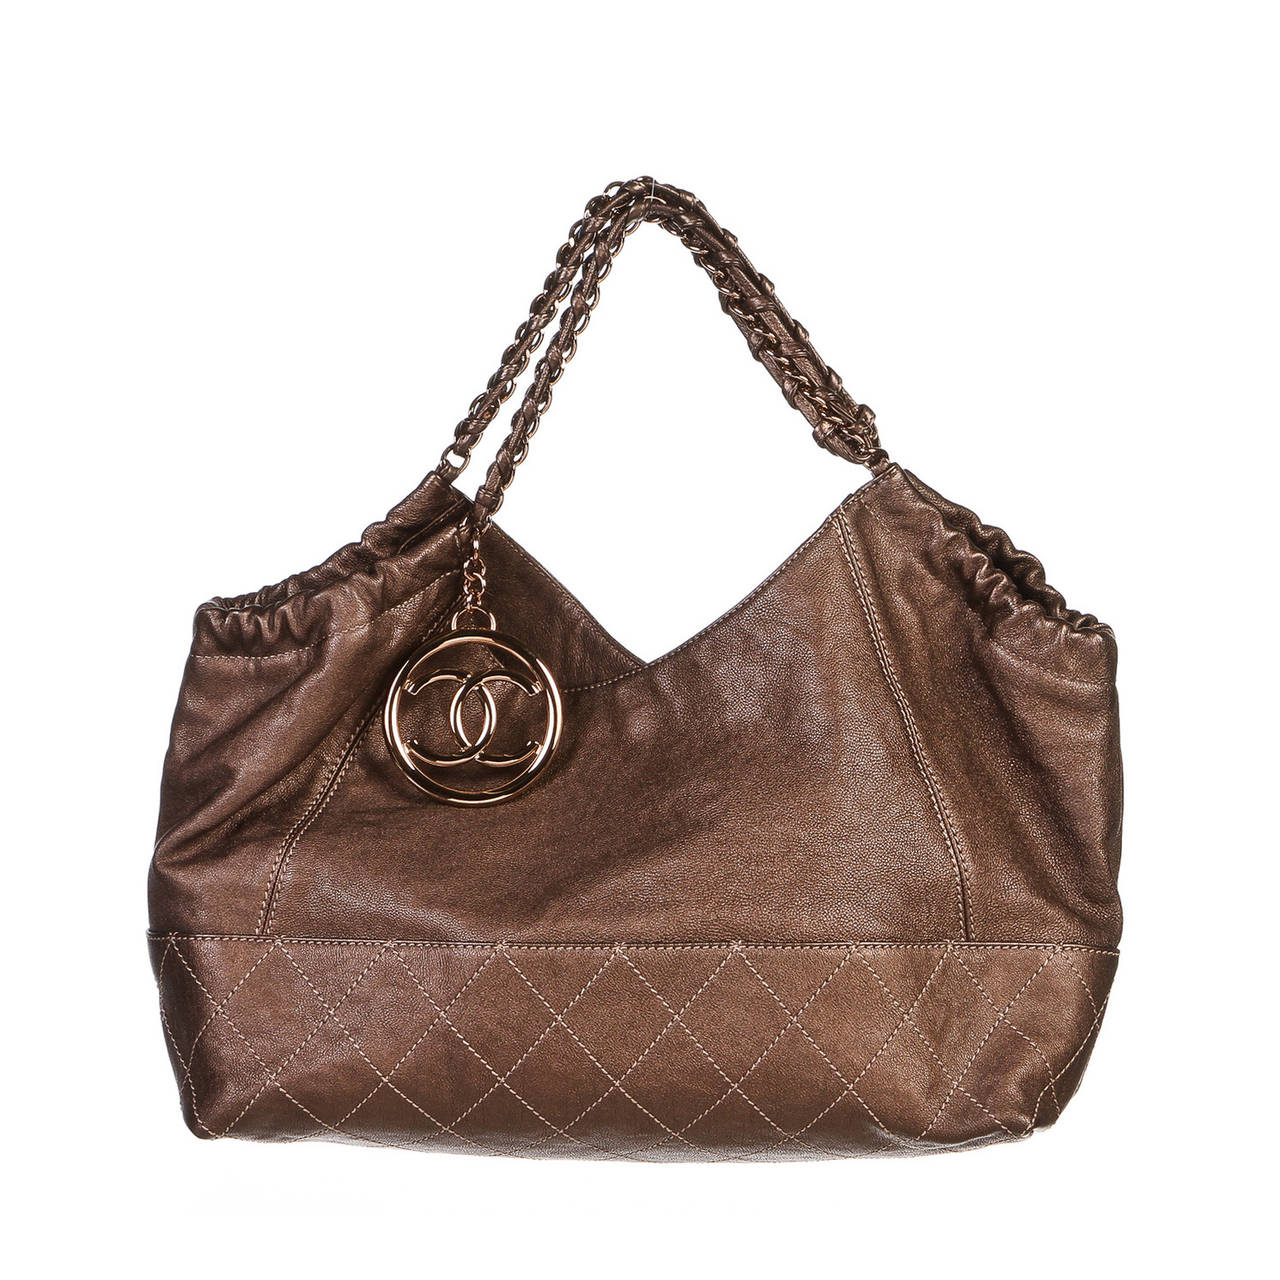 chanel bronze quilted calfskin baby coco cabas handbag at